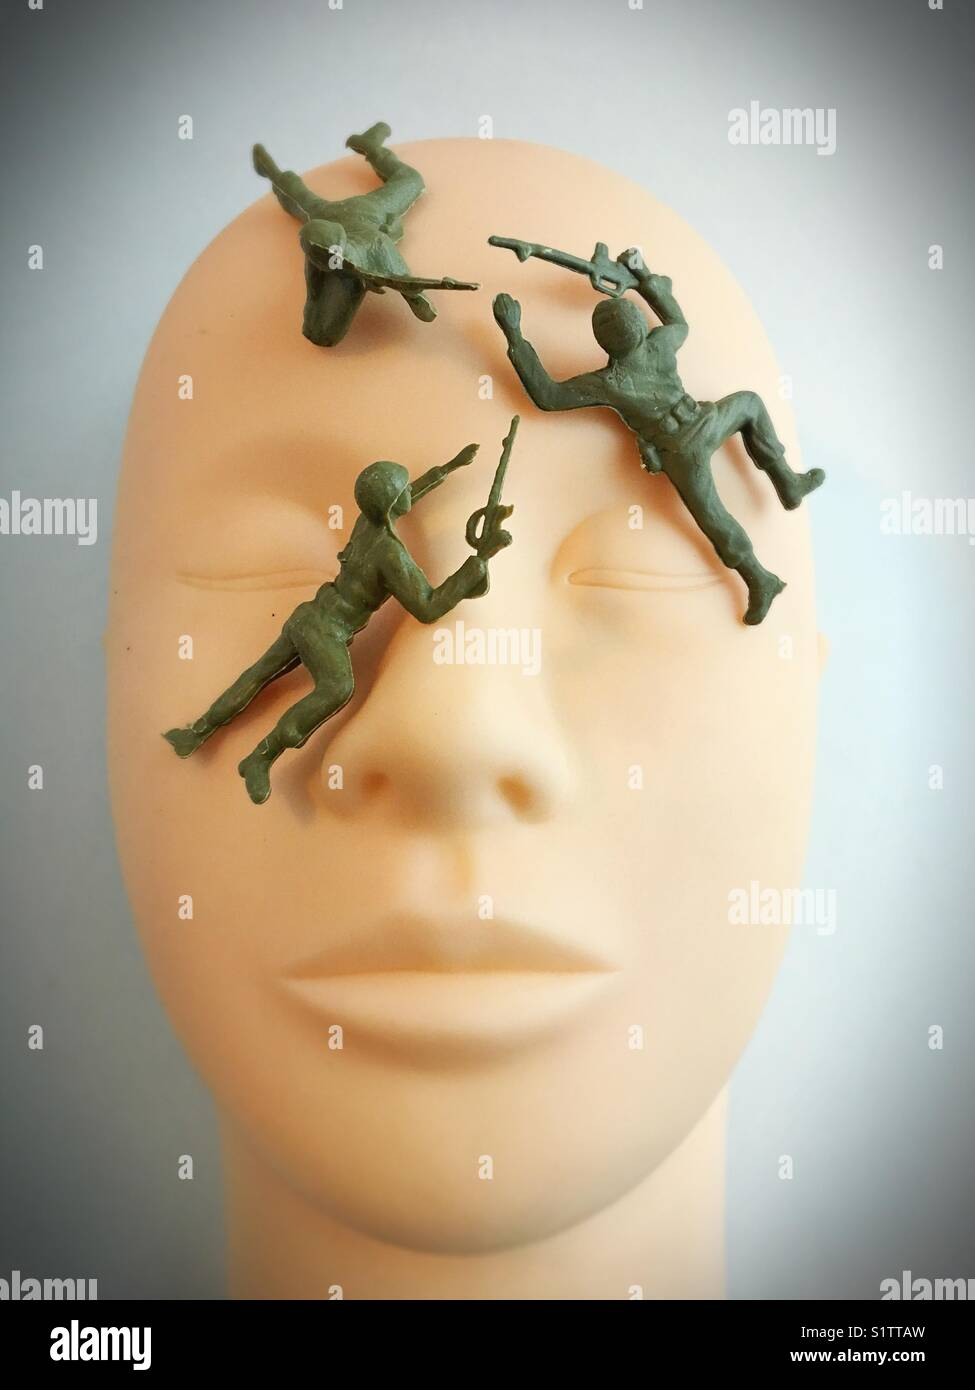 Toy plastic soldiers on plastic human face. - Stock Image